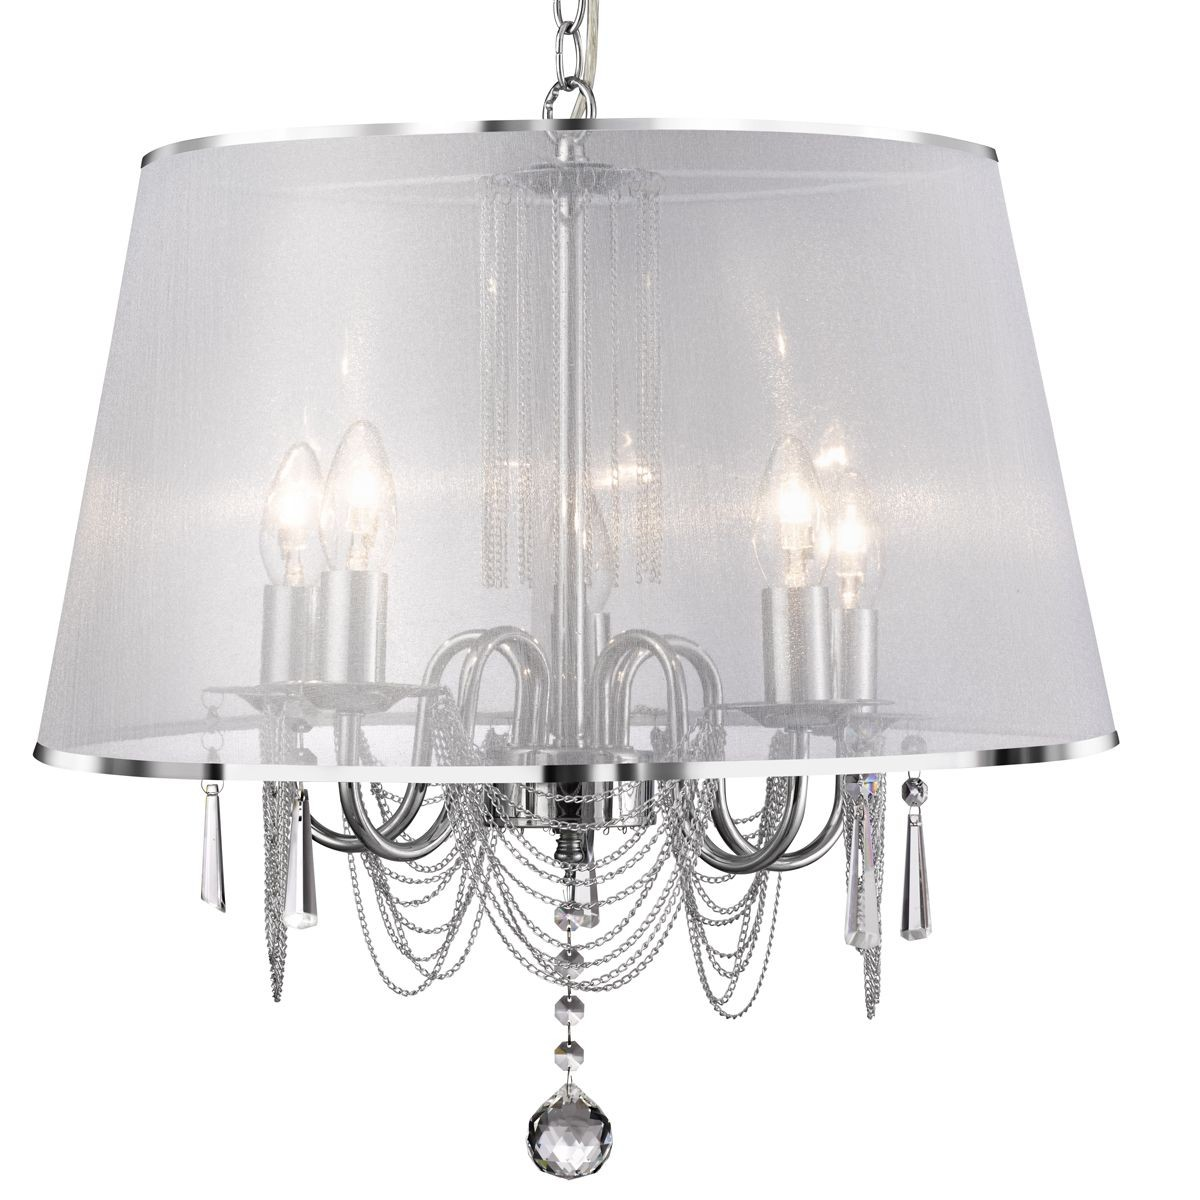 Venetian chrome ceiling light 5 light complete with shade aloadofball